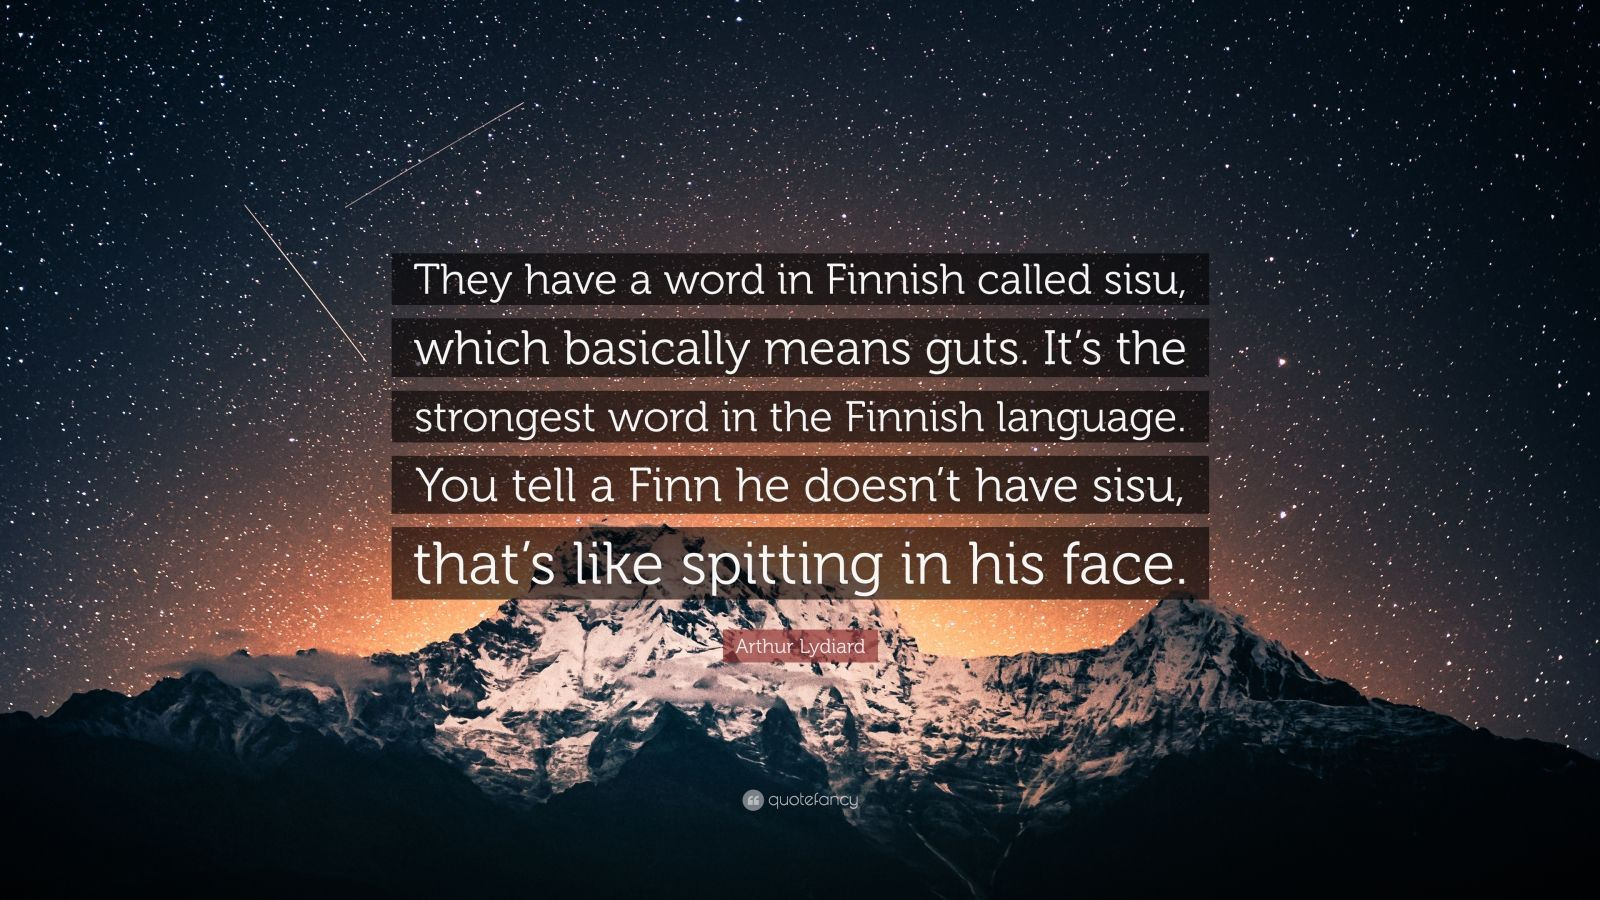 """Arthur Lydiard Quote: """"They have a word in Finnish called sisu, which basically means guts. It's the strongest word in the Finnish language. You tell a Finn he doesn't have sisu, that's like spitting in his face."""""""